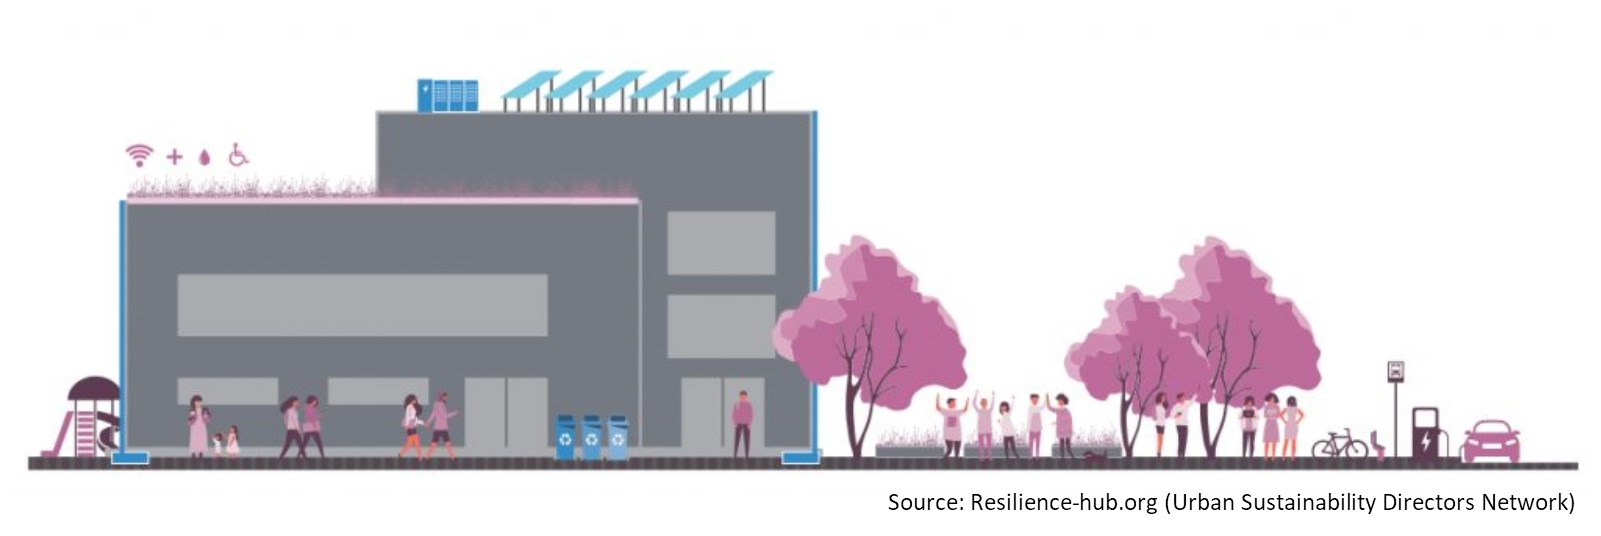 SHARE YOUR VISION: Your community's Resilience Hub